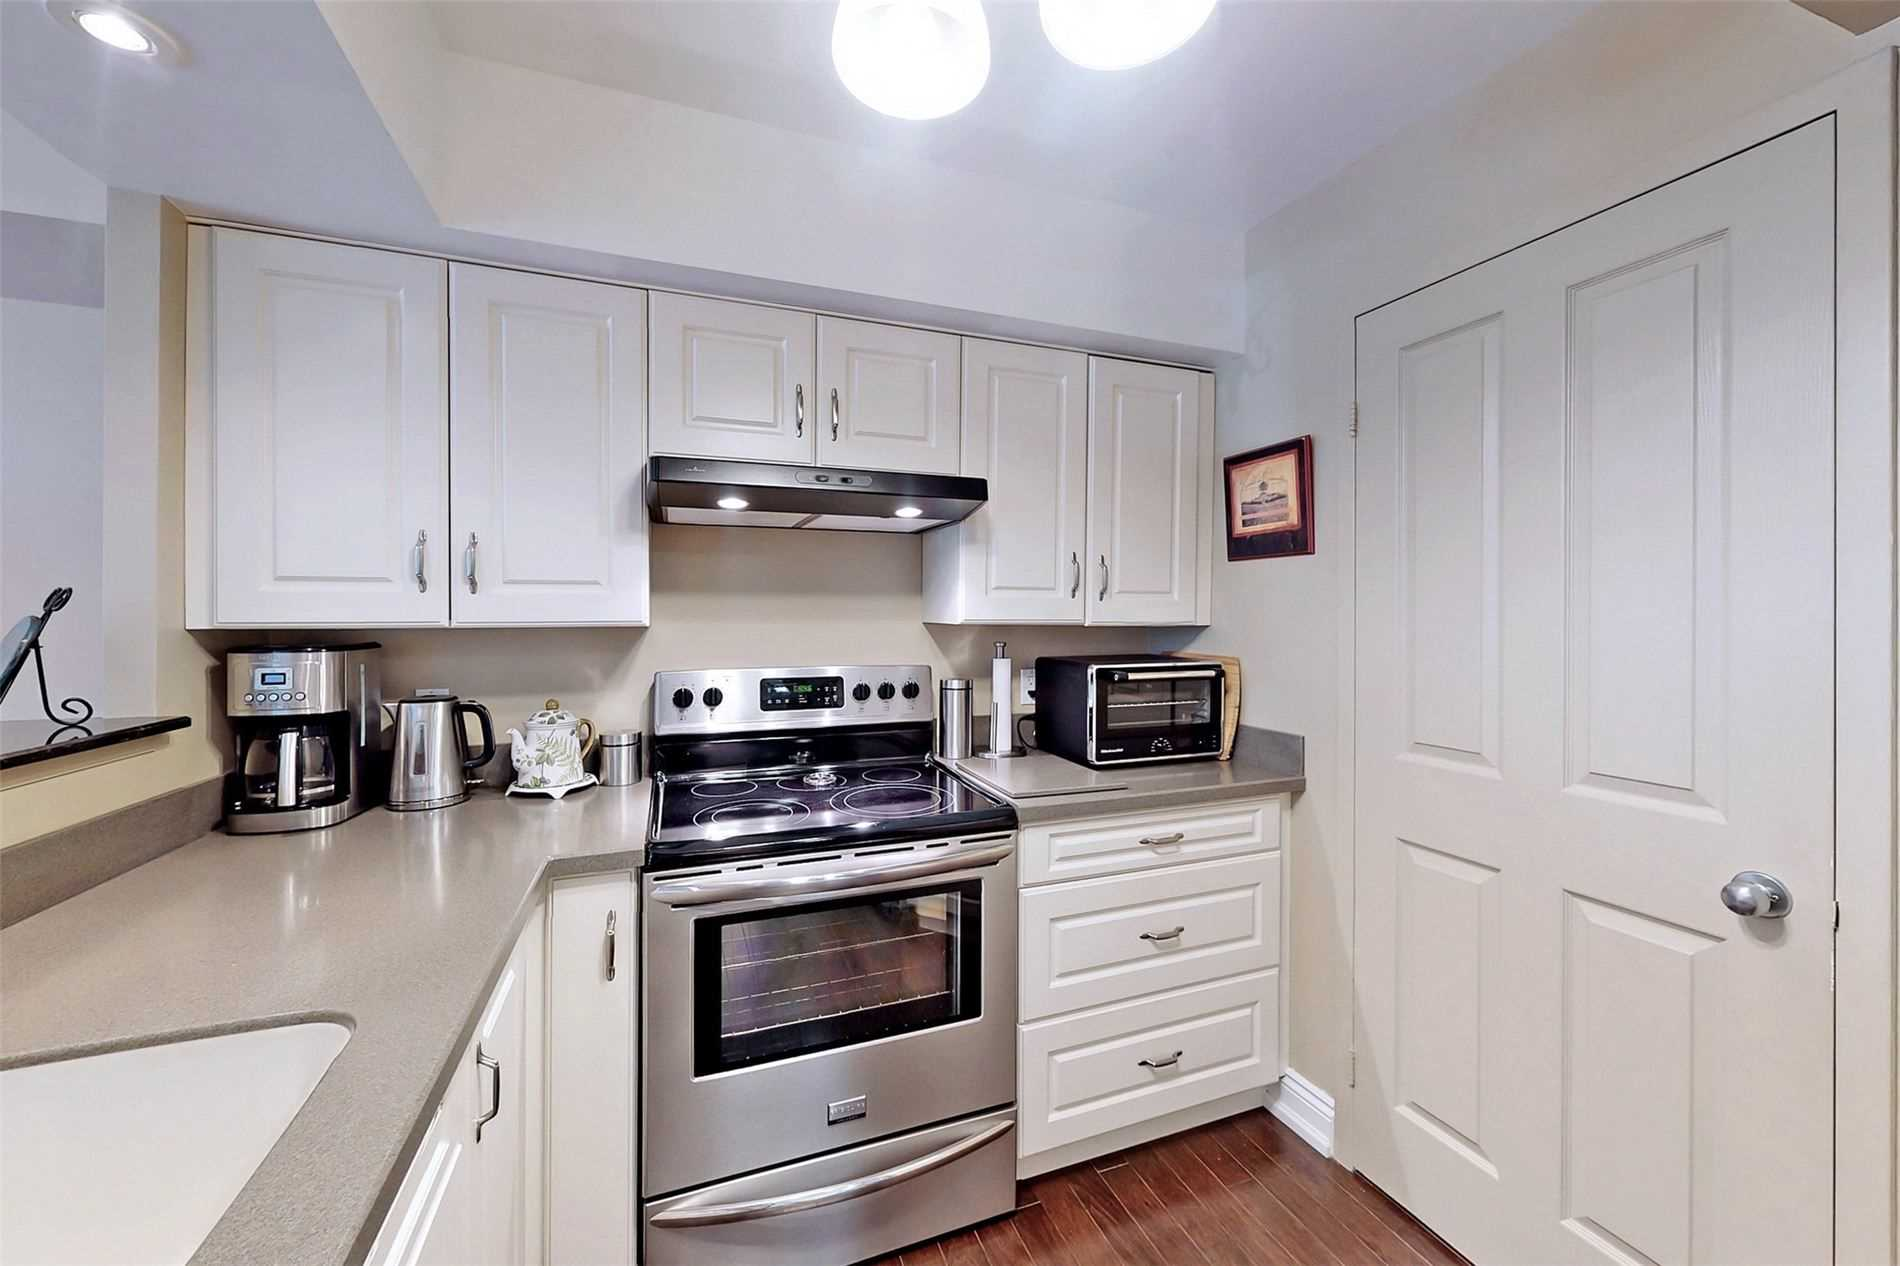 Image 5 of 40 showing inside of 2 Bedroom Condo Apt 2-Storey for Sale at 25 Cumberland Lane Unit# 105, Ajax L1S7K1